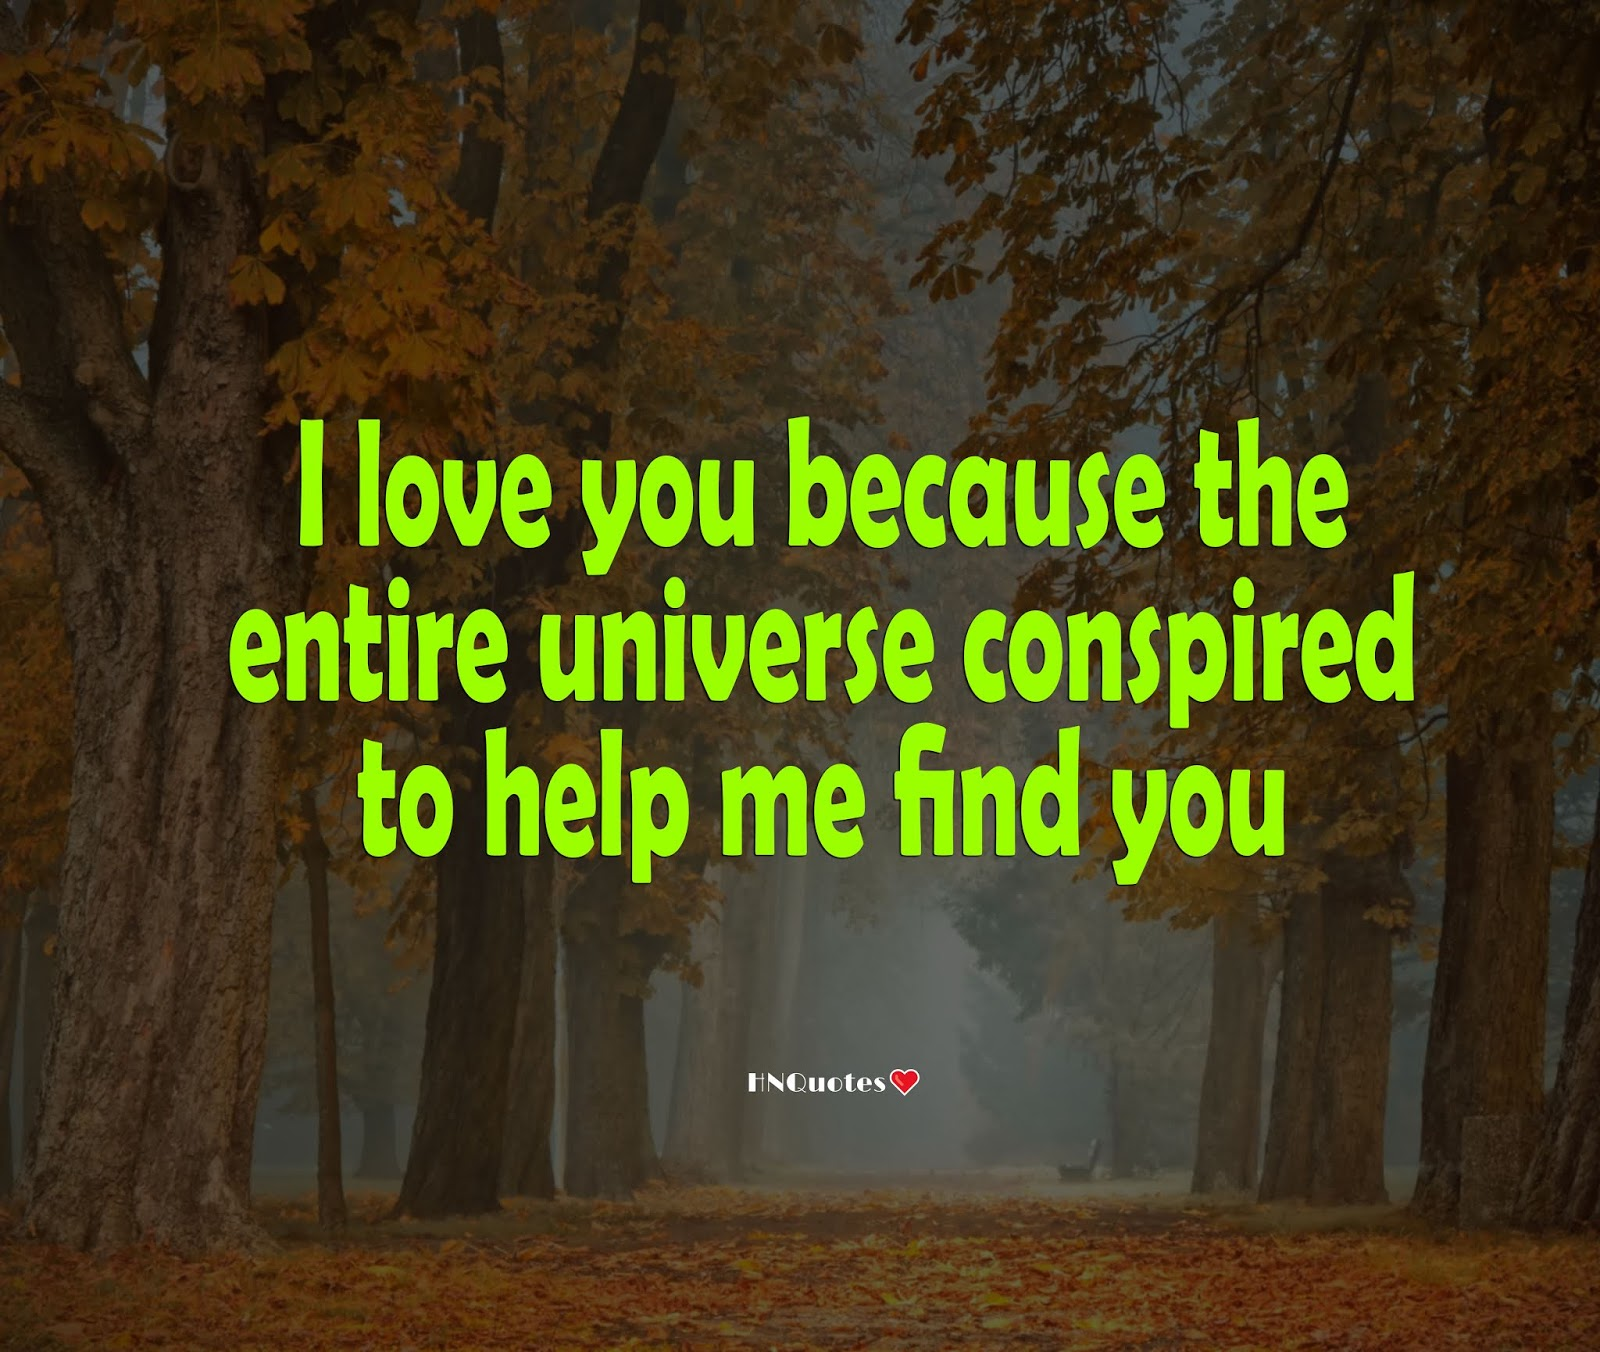 Romantic-Quotes-Beautiful-Sayings-about-Love-Quotes-for-Couples-20-[HNQuotes]